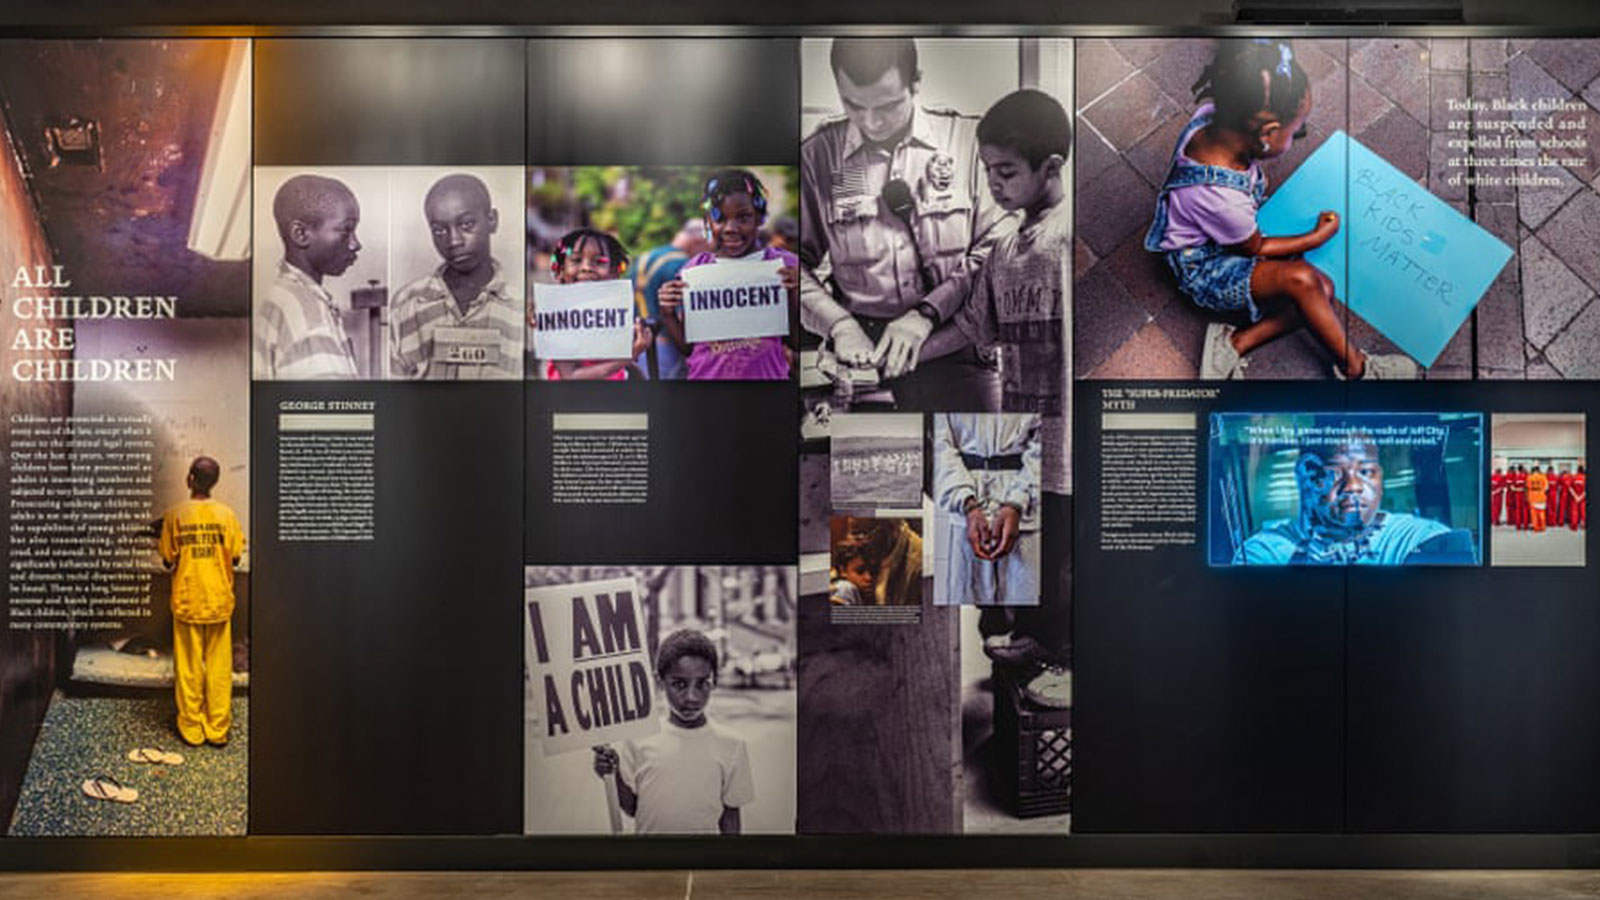 'The museum makes plain that the sores of America's racial wounds remain very much open.'